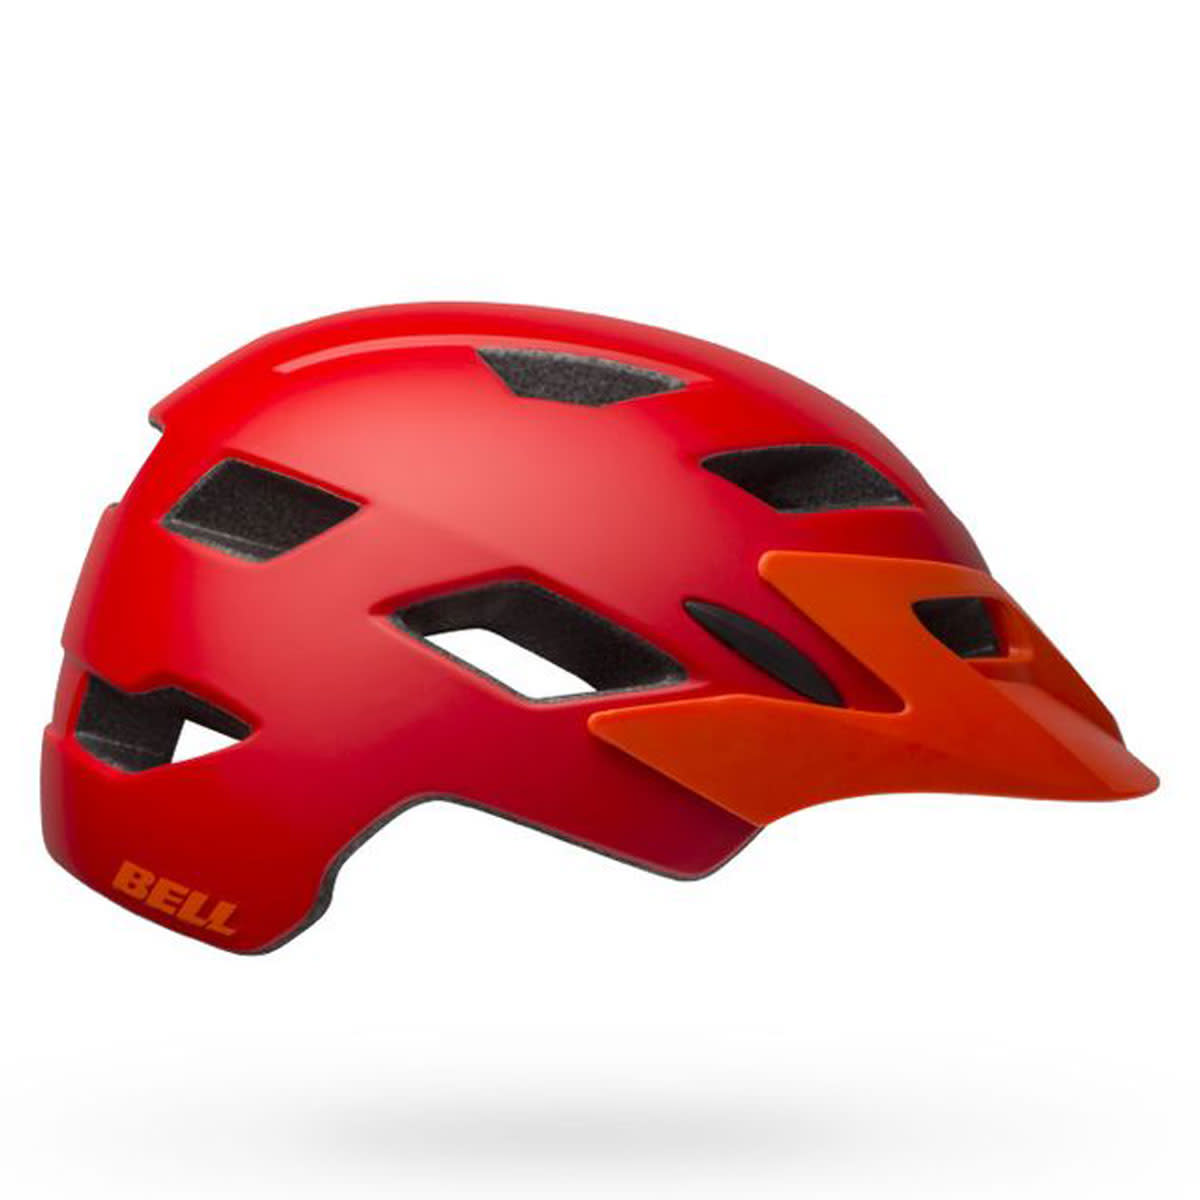 CASQUE VELO BELL SIDETRACK YOUTH 2019 ROUGE